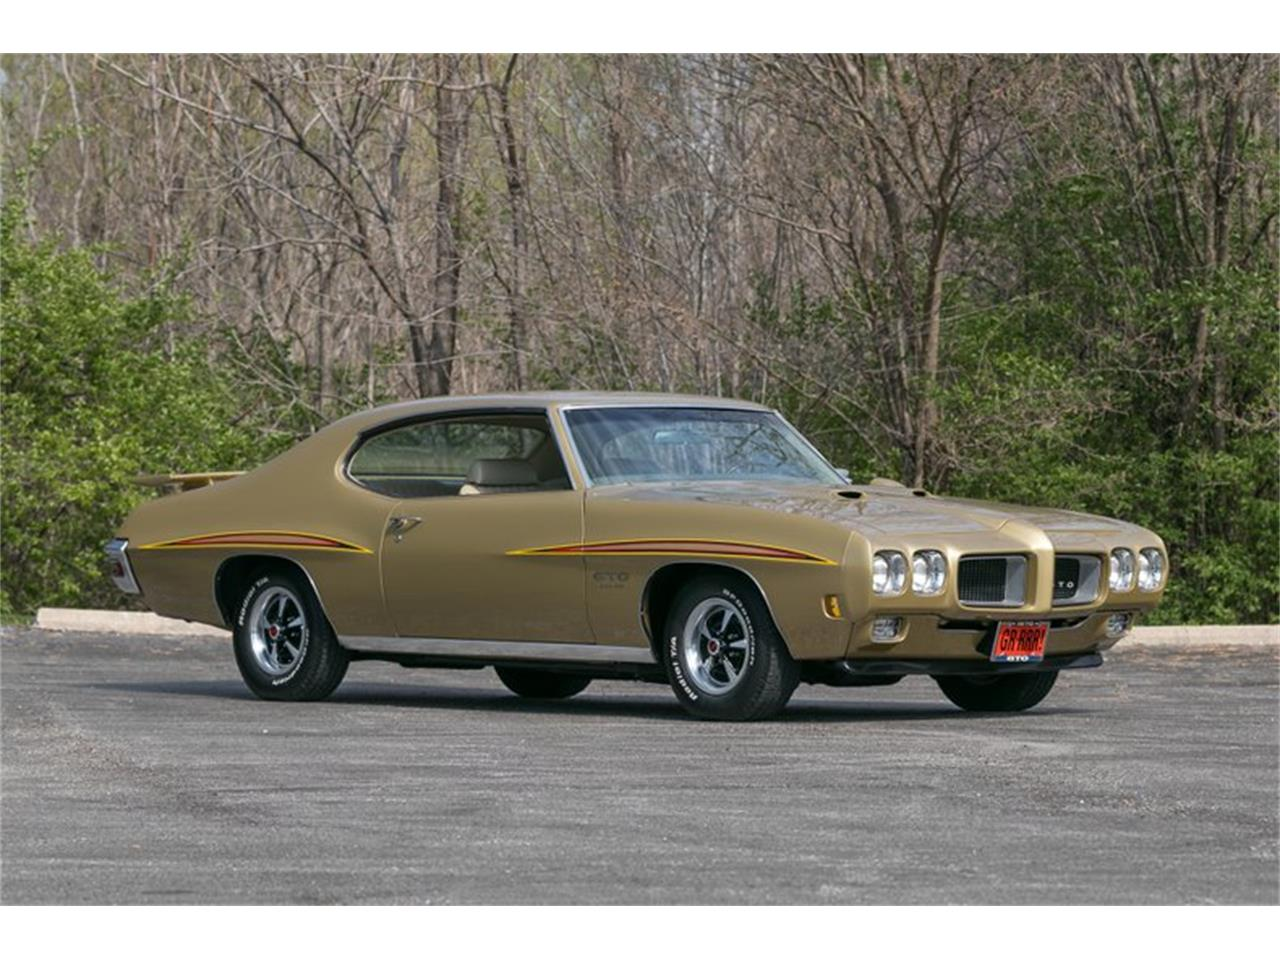 Large Picture of Classic 1970 Pontiac GTO located in St. Charles Missouri - $59,995.00 - QKPX